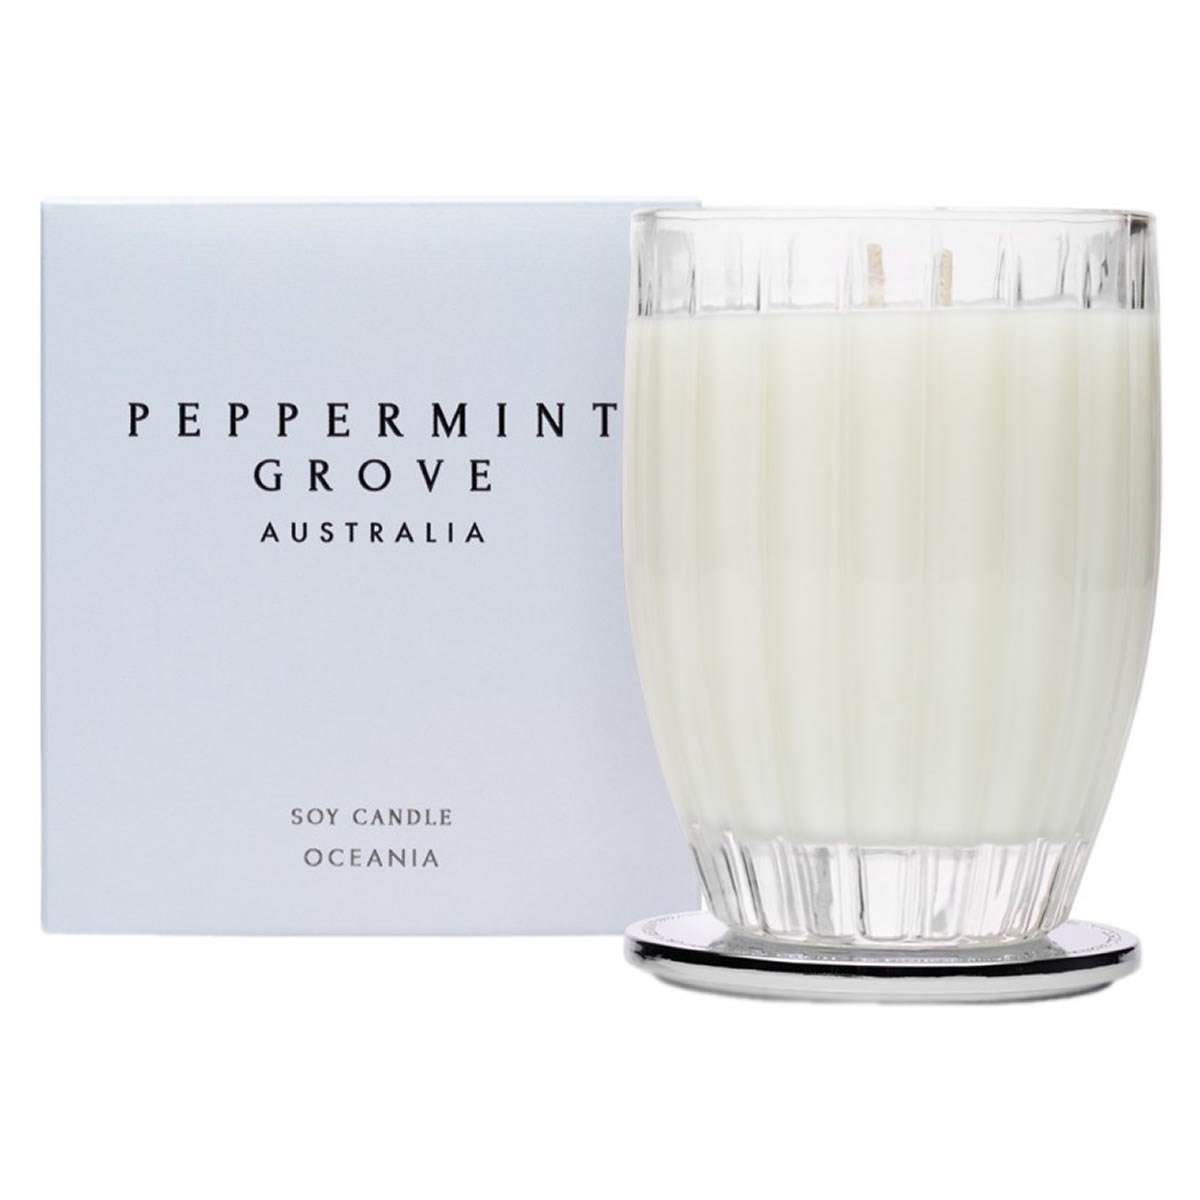 Peppermint Grove Australia Large Soy Candle - Oceania